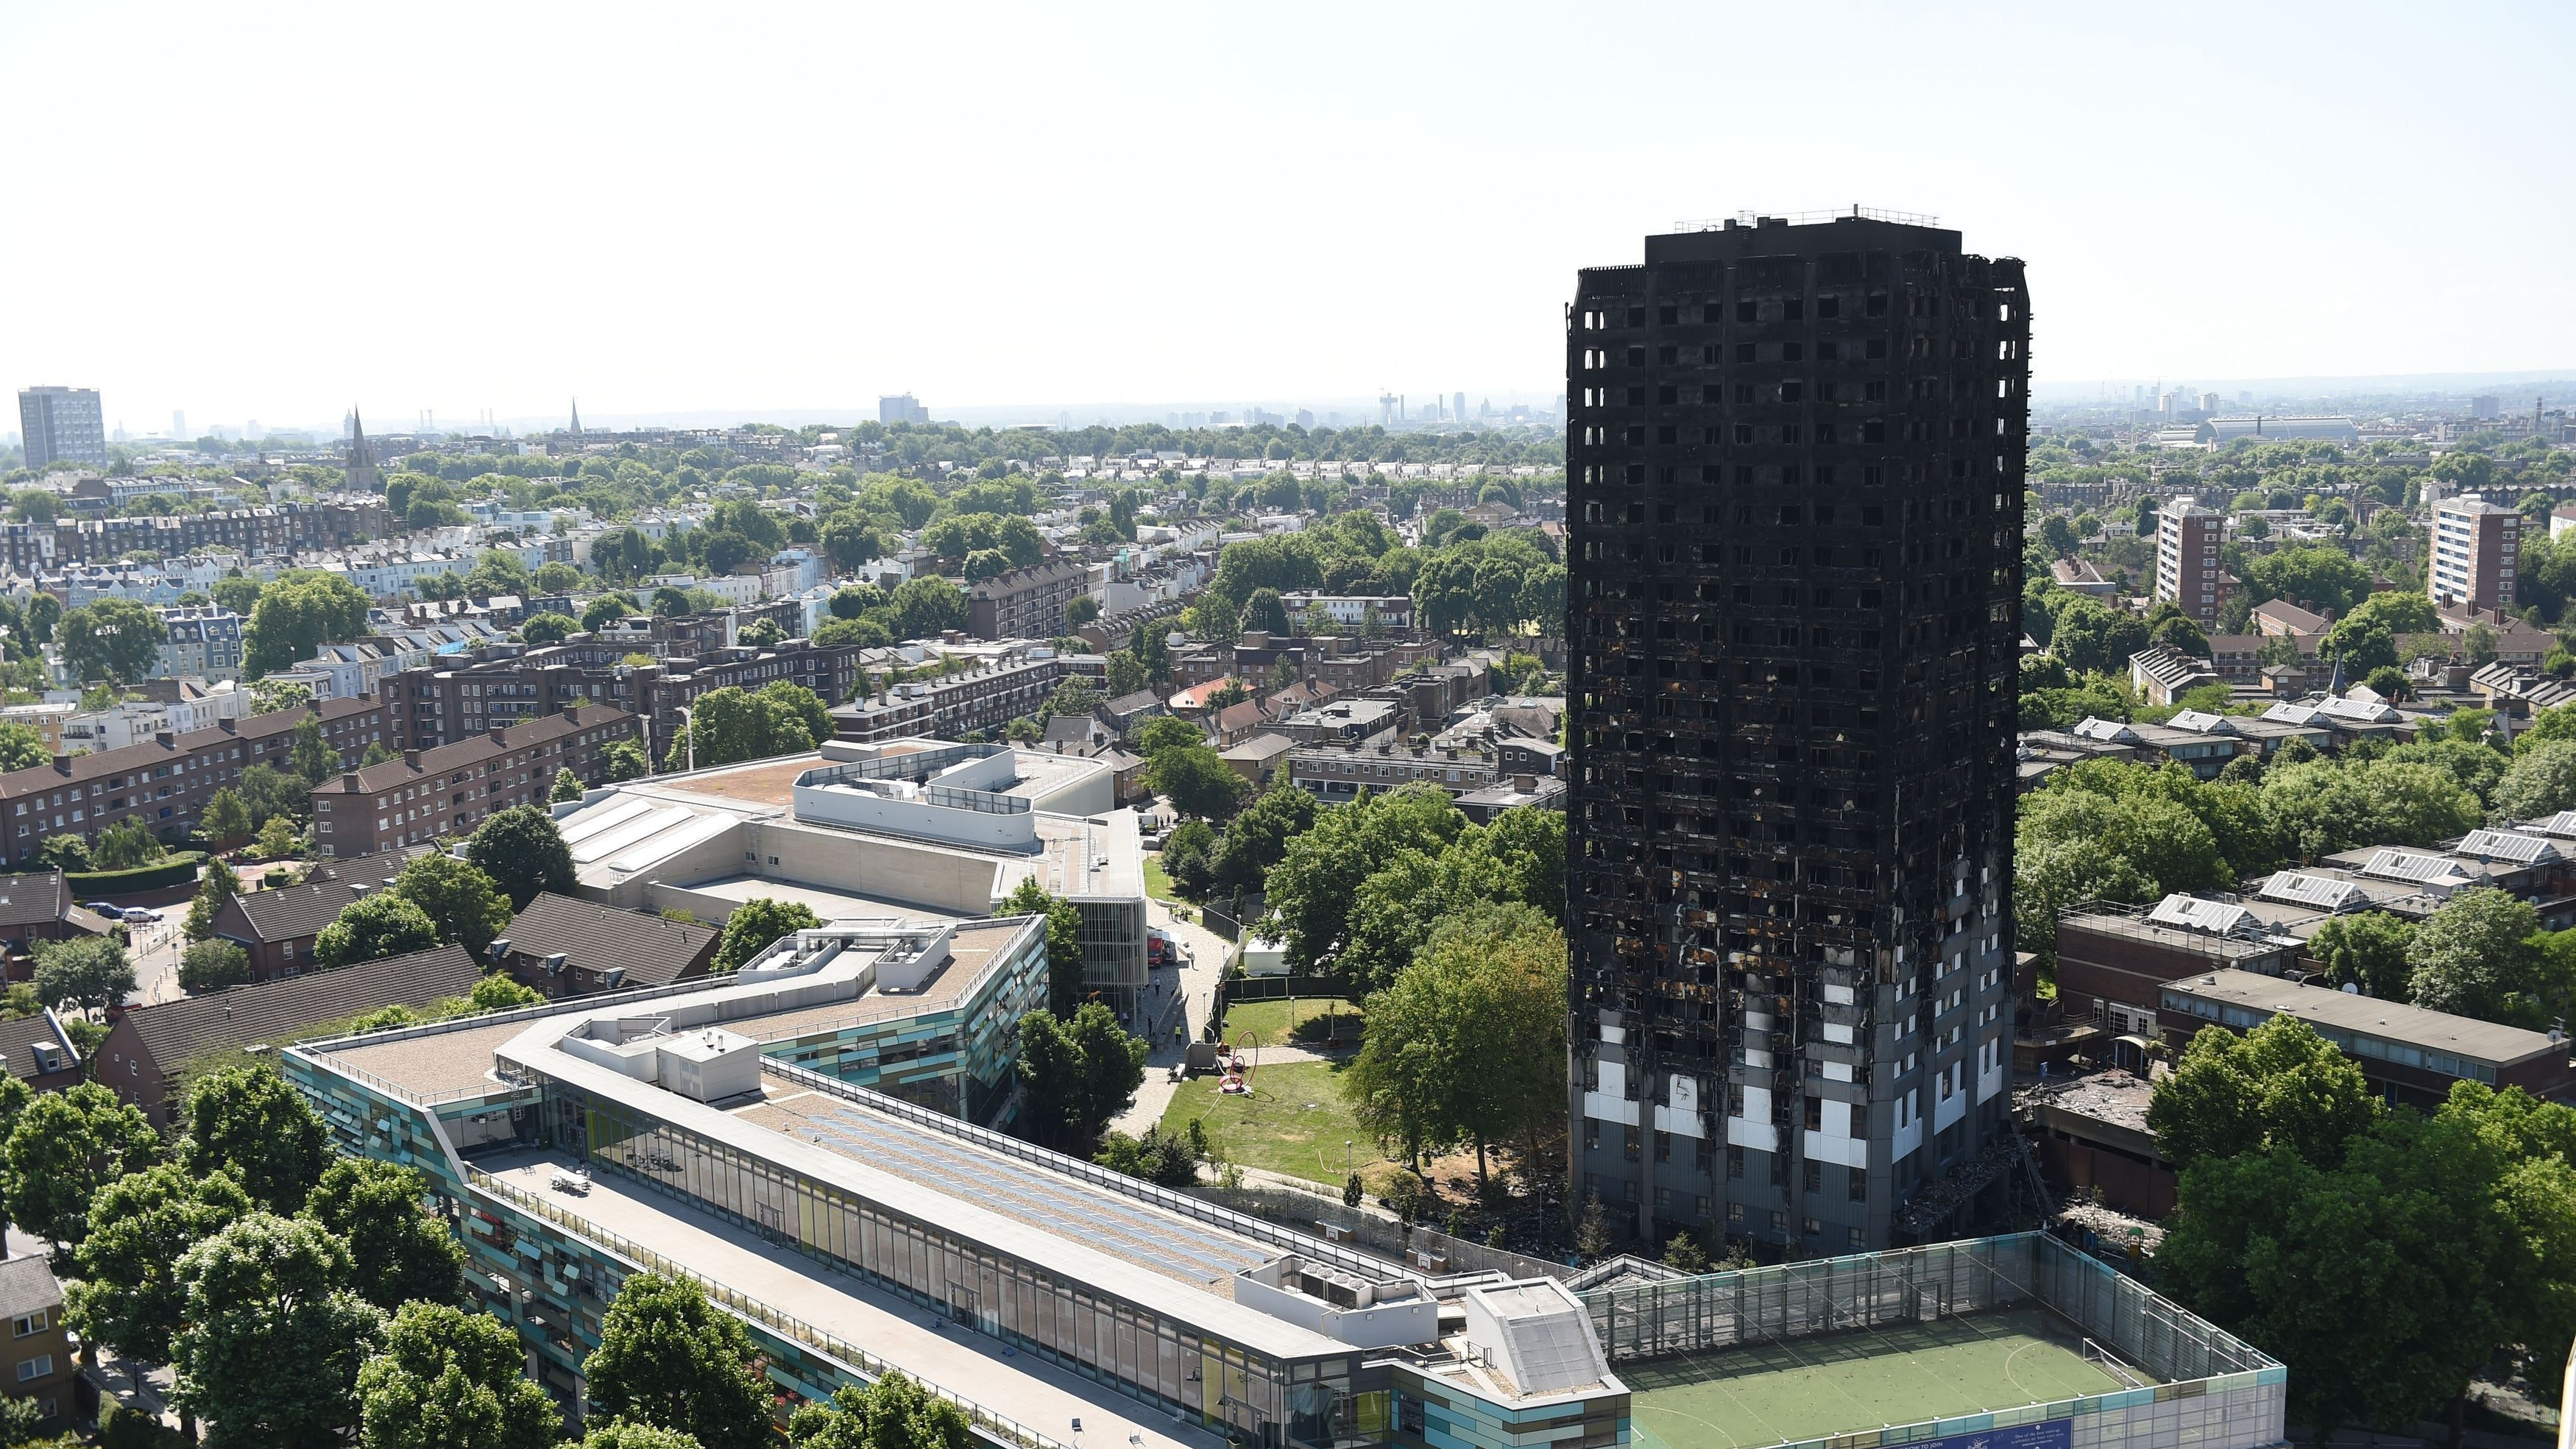 Post-Grenfell review finds UK's building regulations system broken